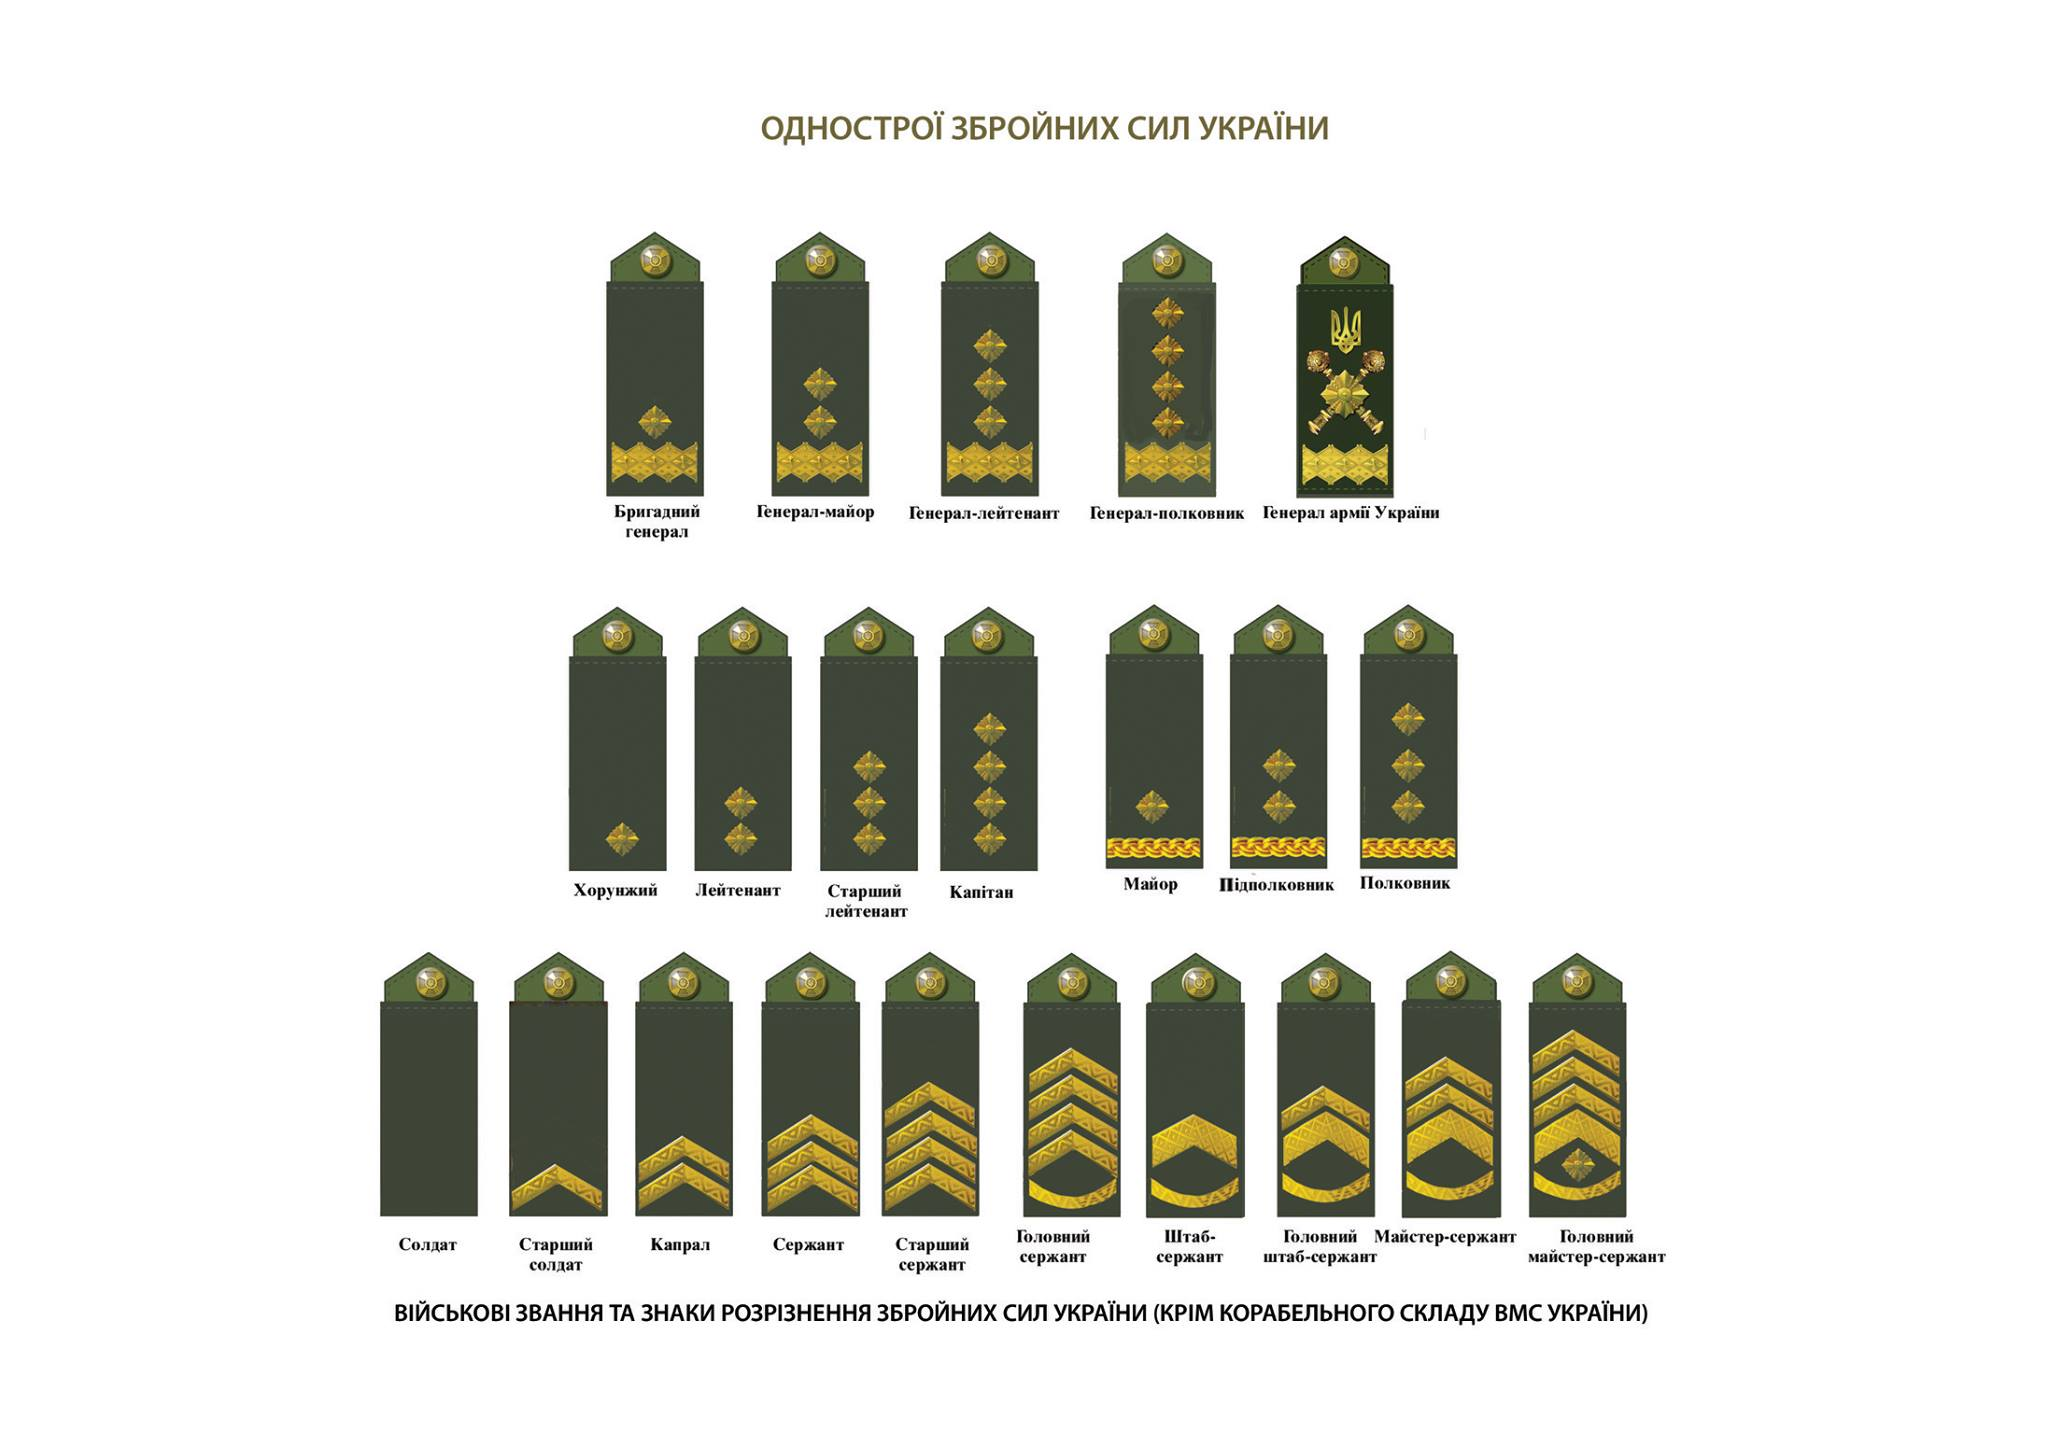 It Works Pay Chart: Military ranks of Ukraine 2016 (adopted).jpg - Wikimedia Commons,Chart